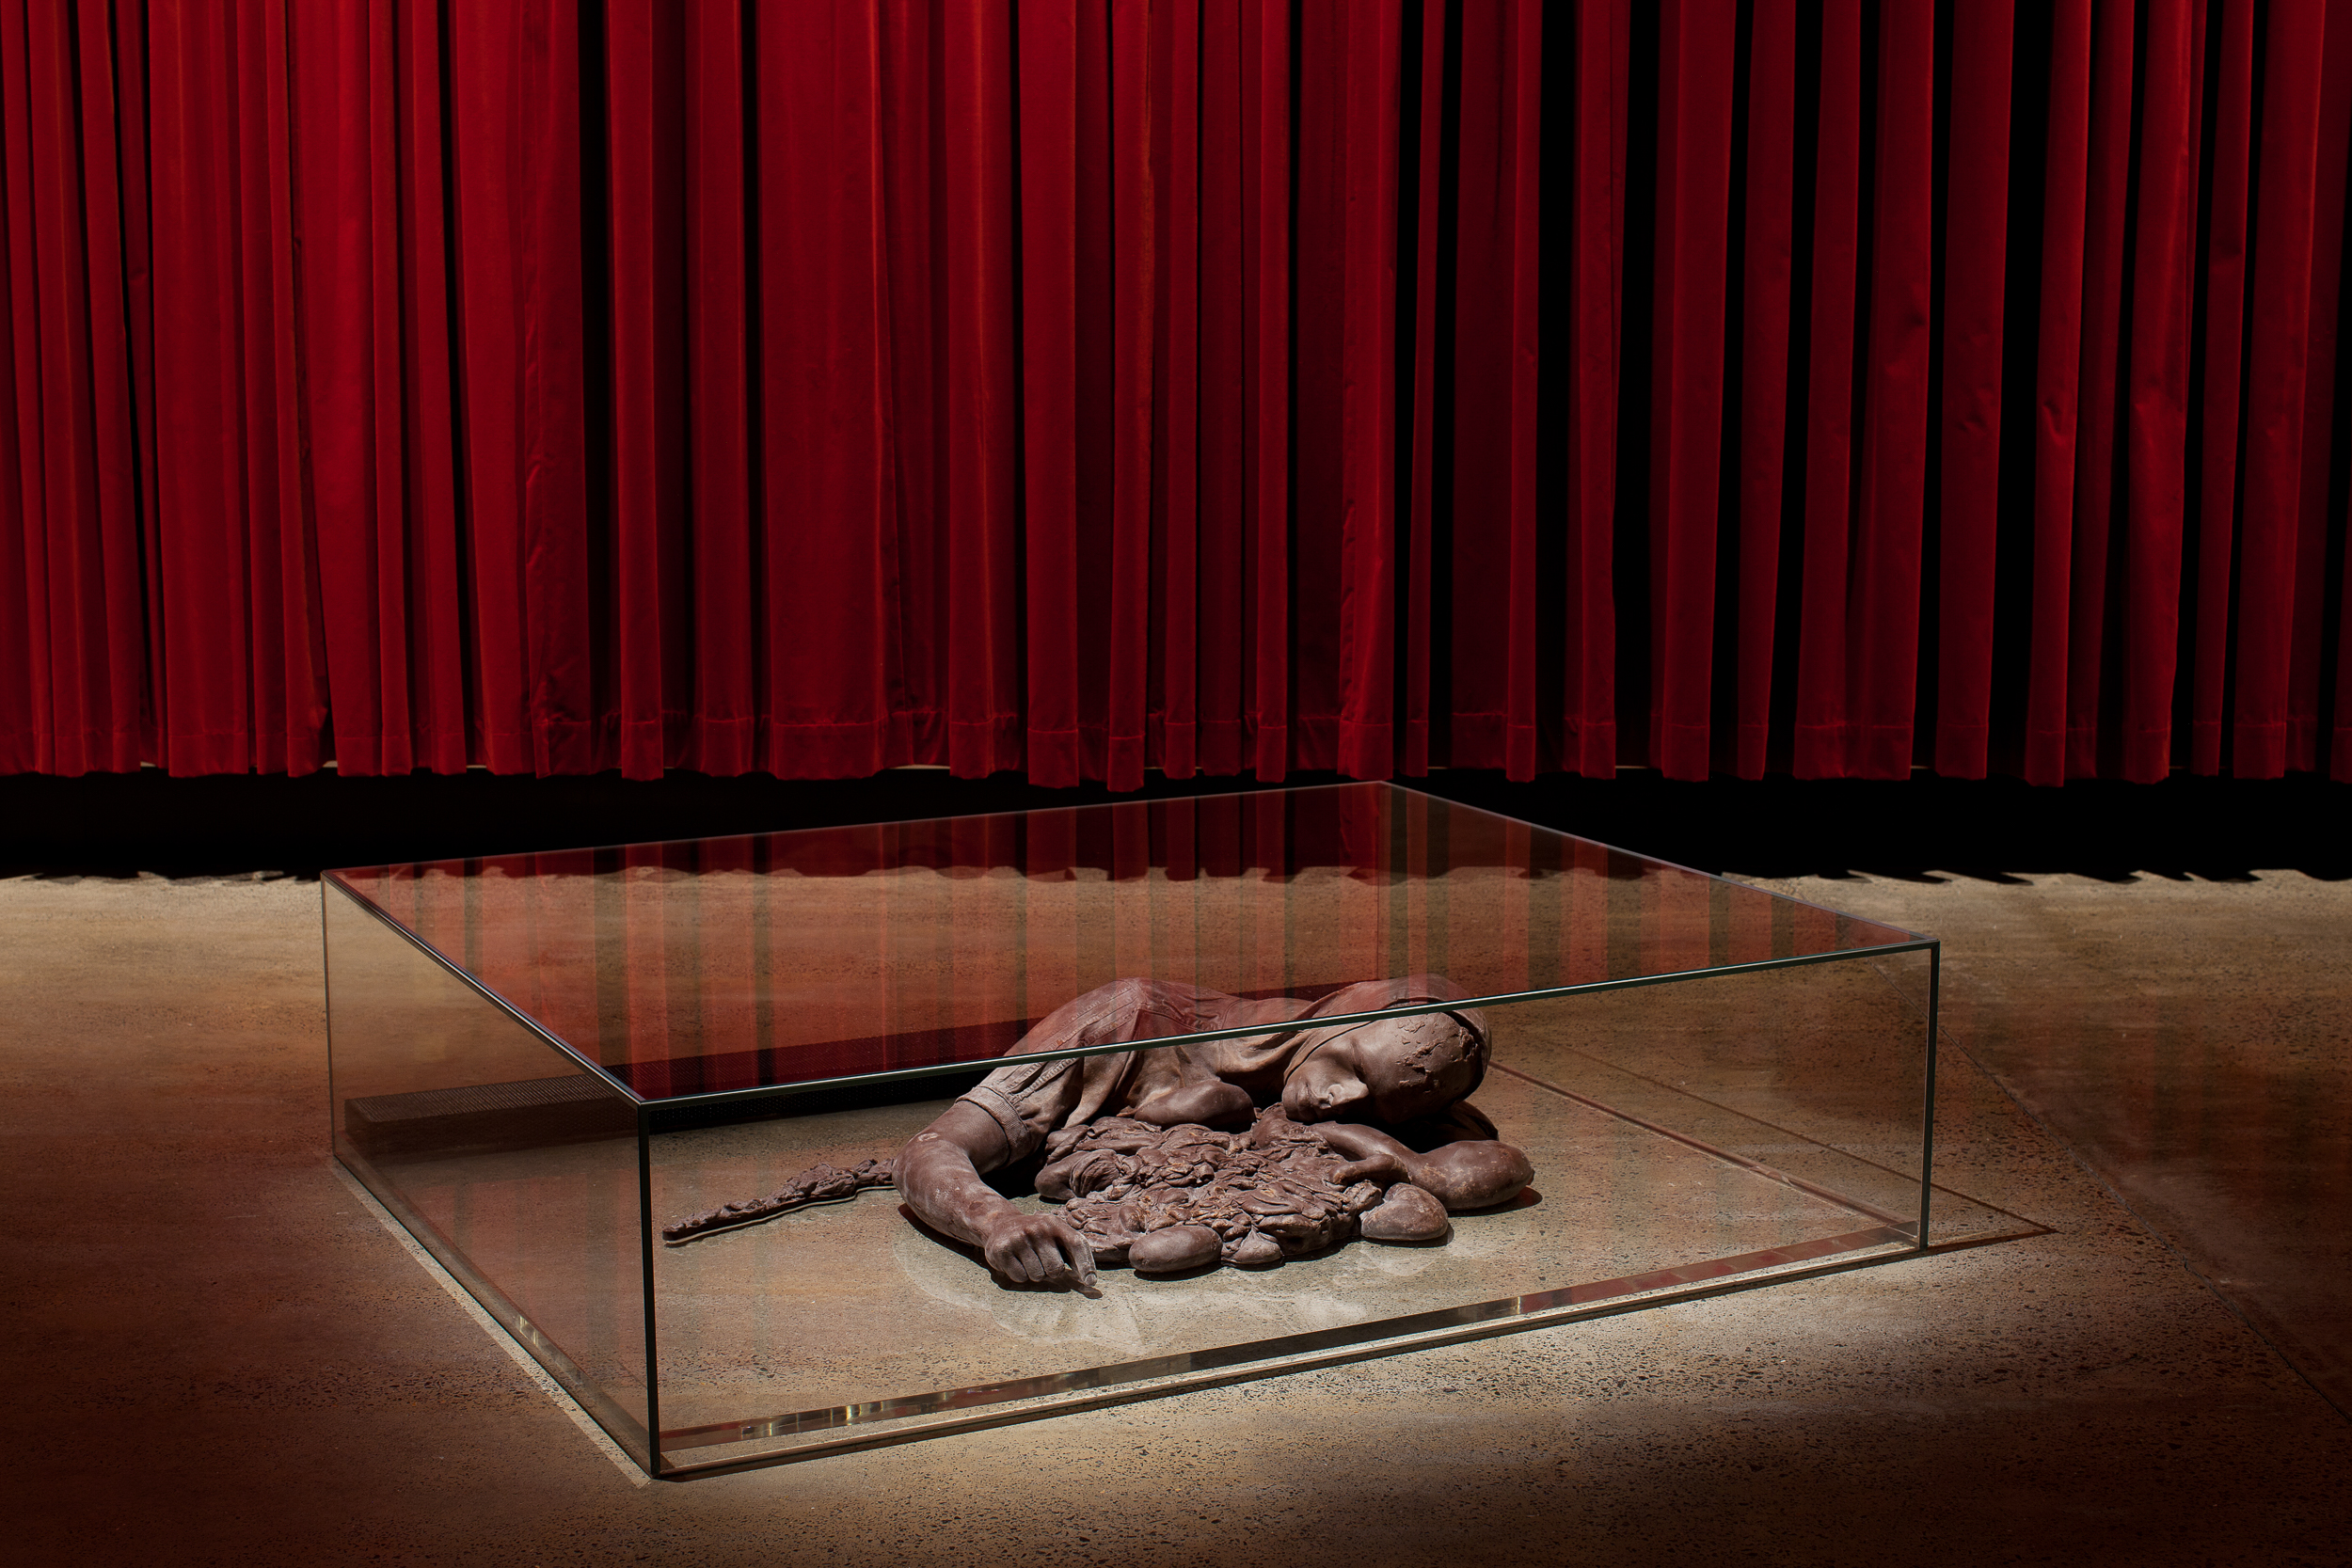 On the Road to Heaven The Highway to Hell 2008  Stephen J Shanabrook (1965, Cleveland, OH, USA; lives and works in New York, NY, USA and Moscow, Russia) Remnants of the suicide bomber cast in dark chocolate, edn 2/5